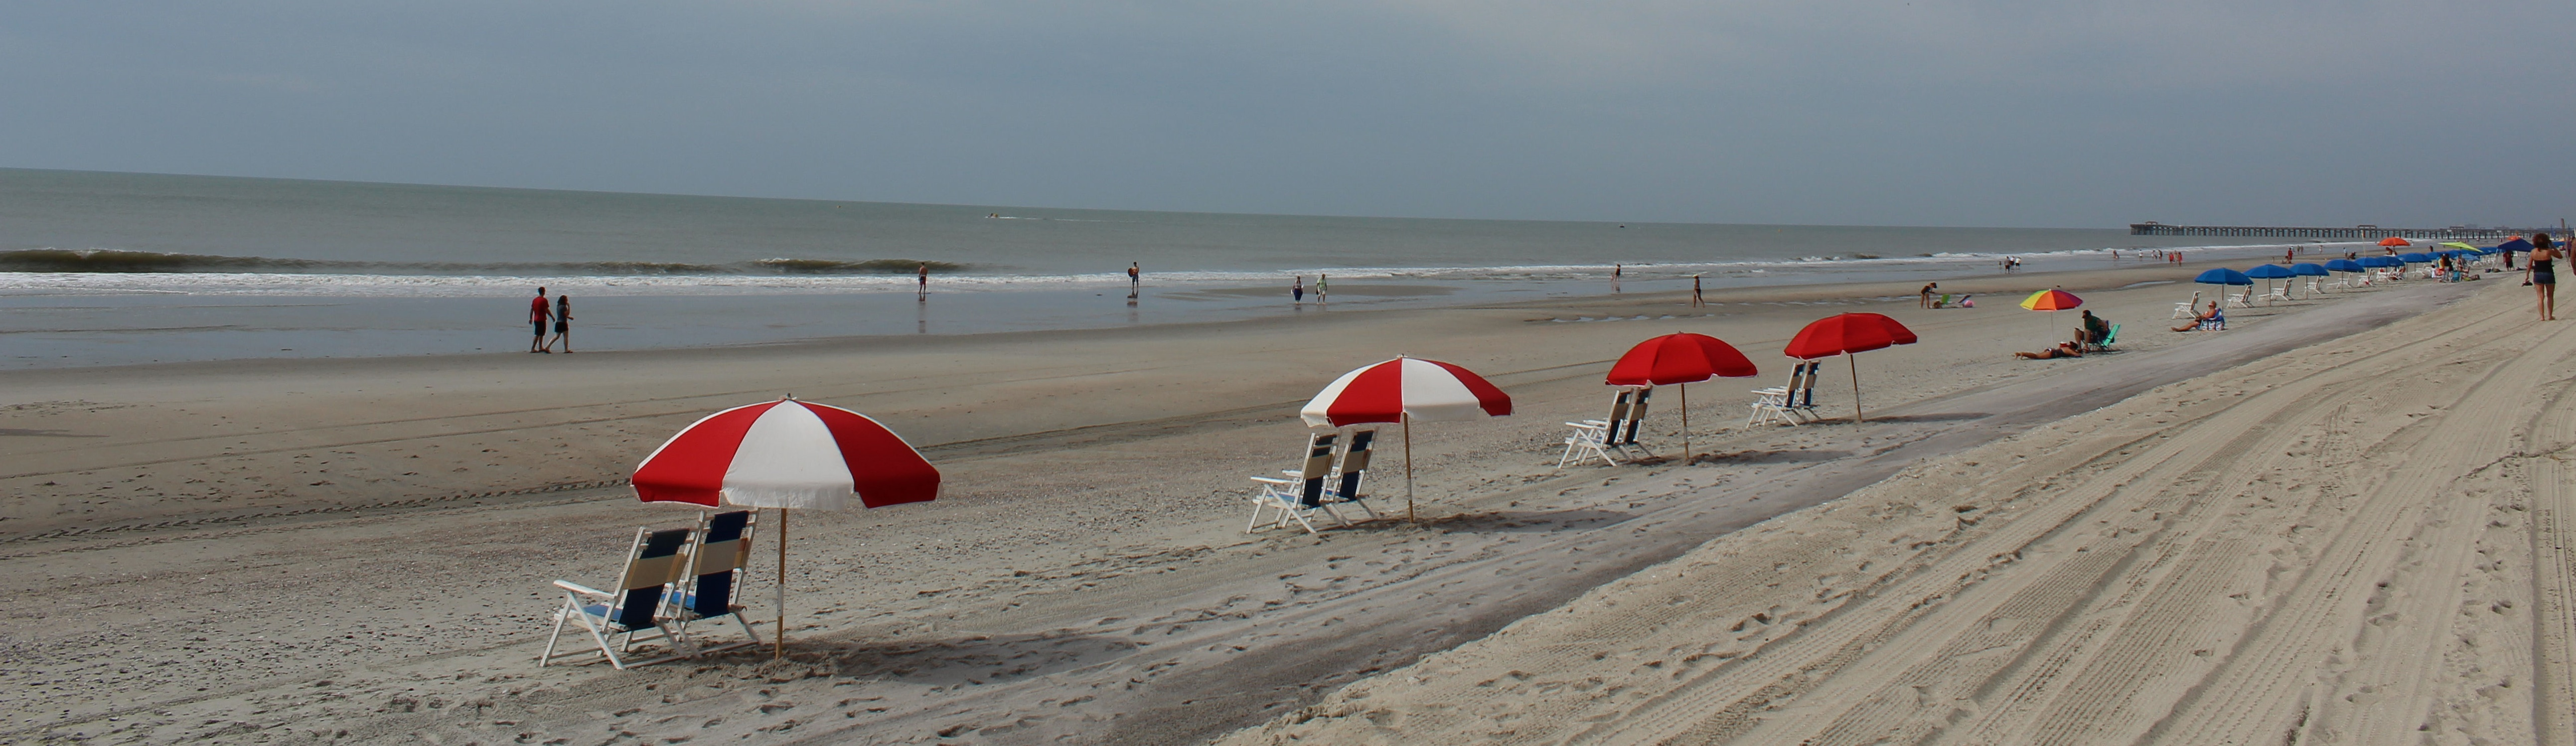 Myrtle Beach Condos Myrtle Beach Vacation Packages Sandcastle South